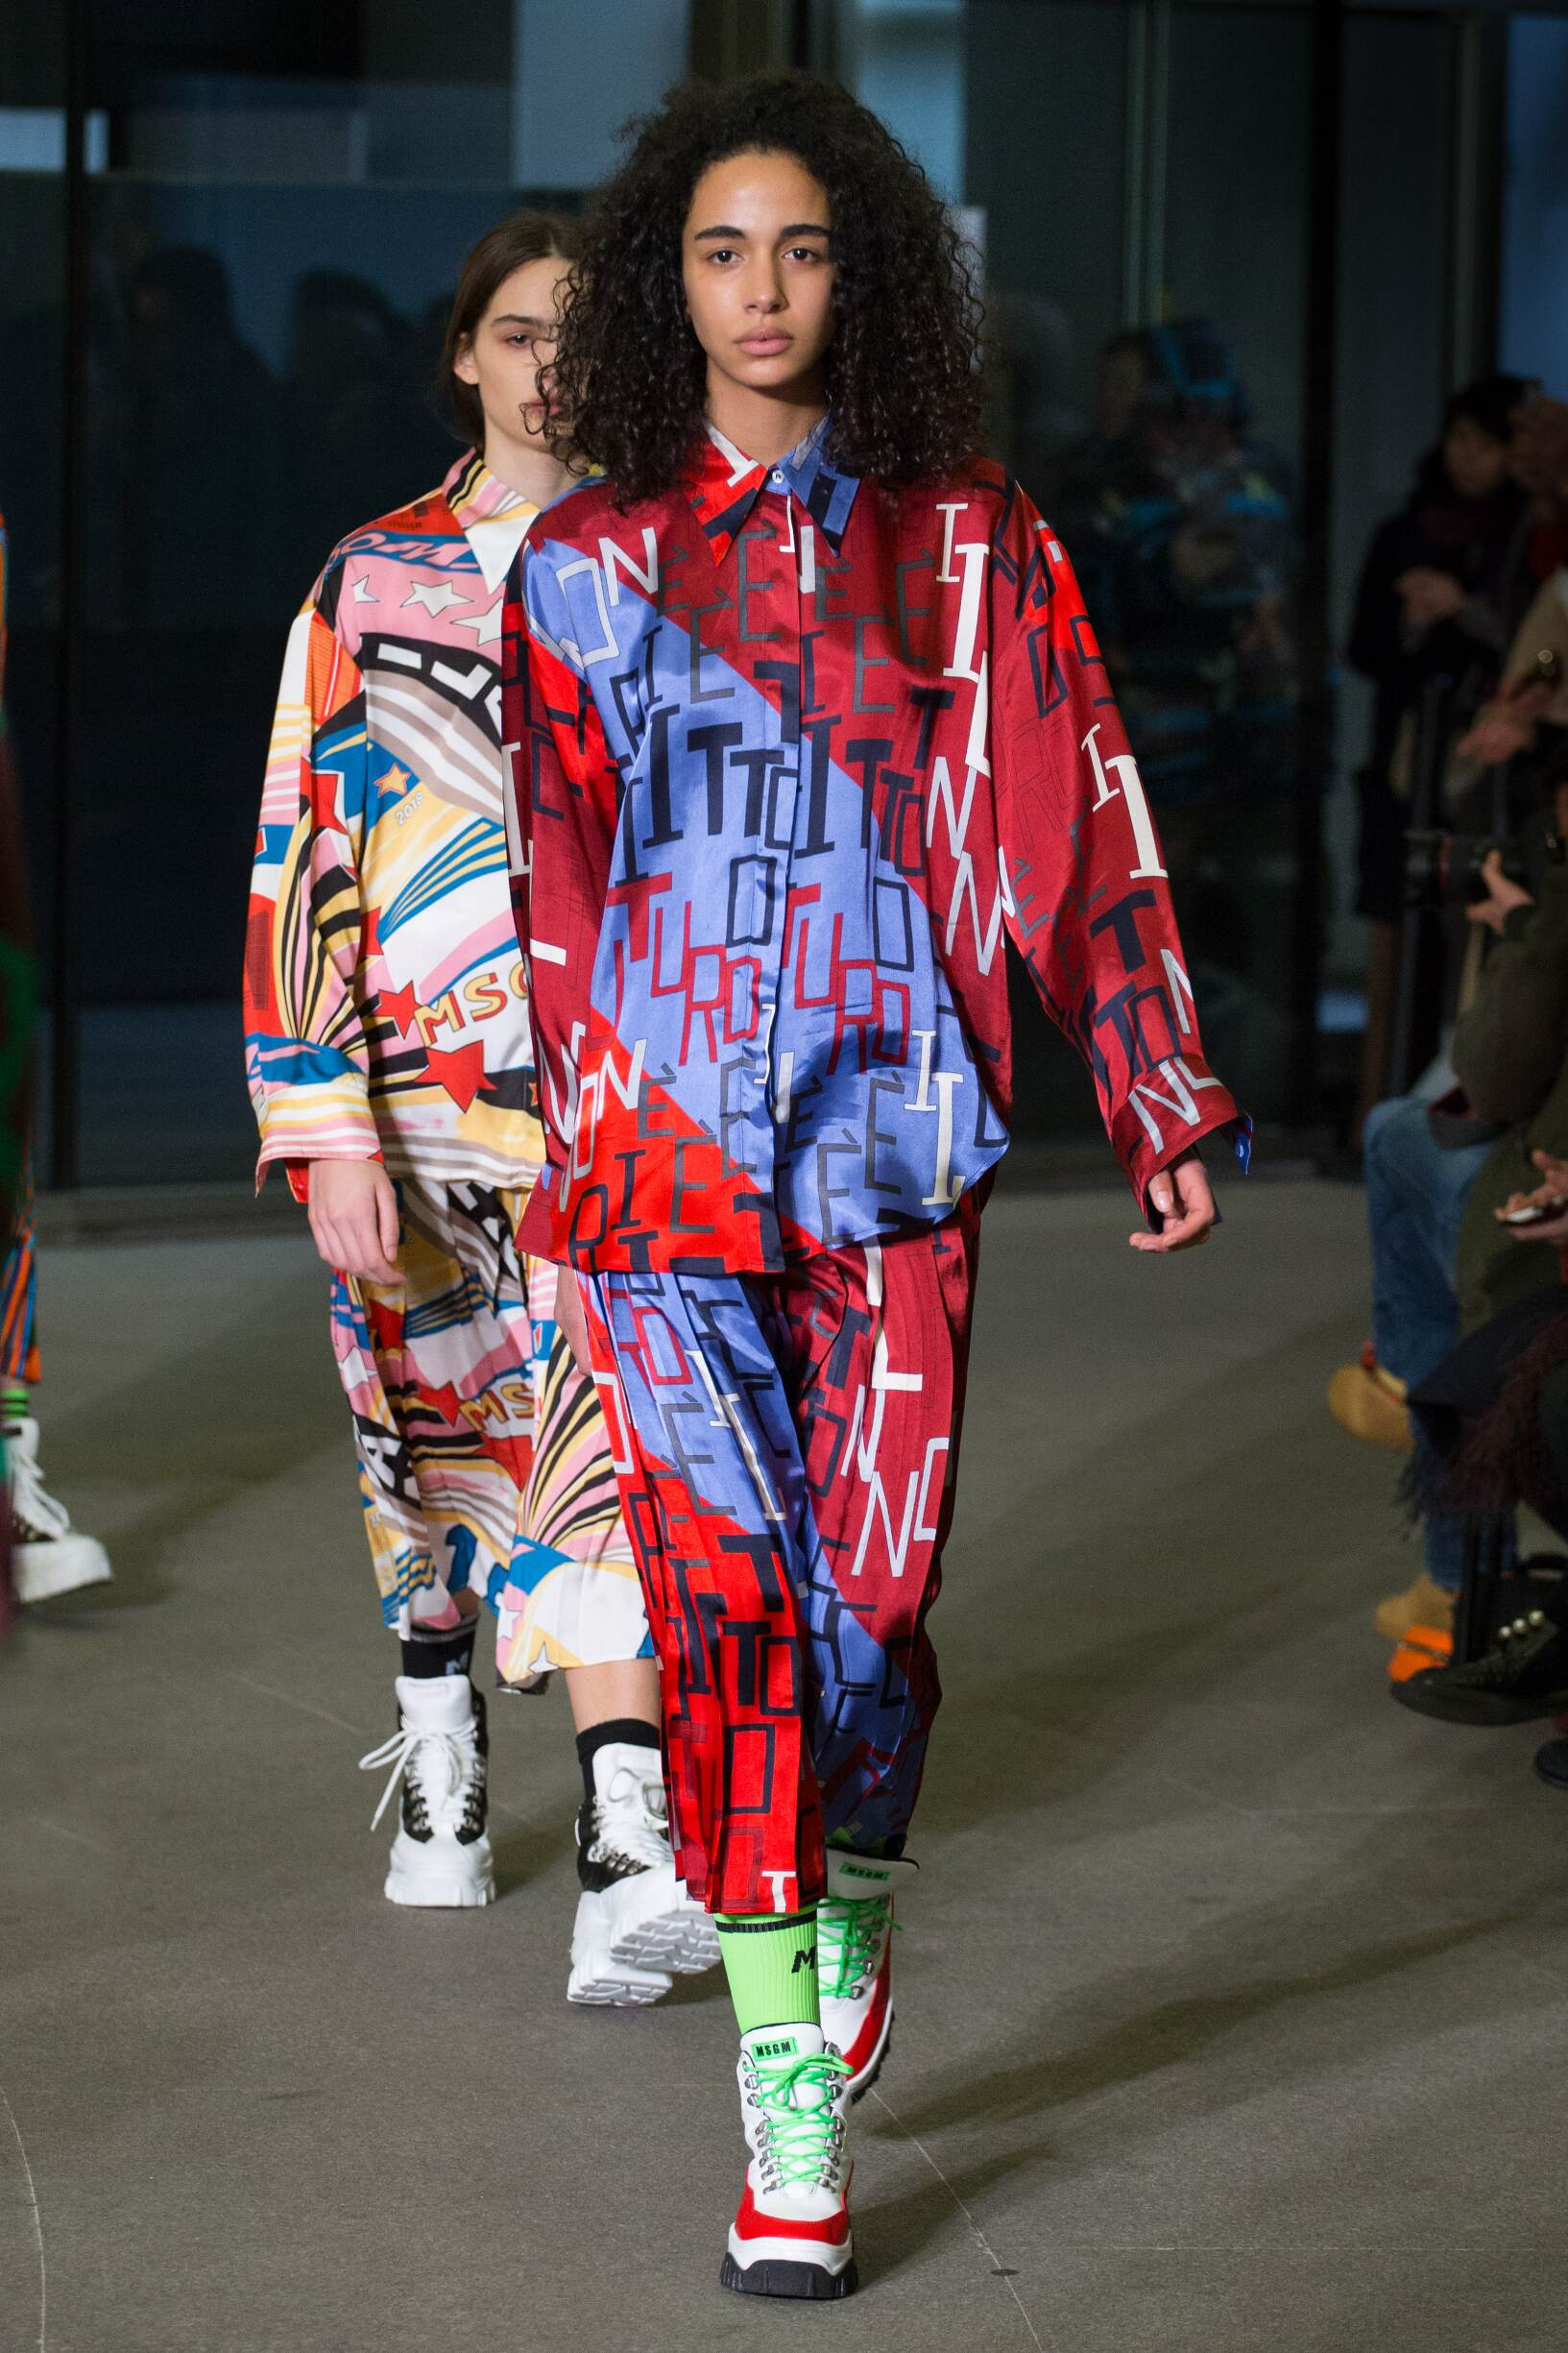 Woman FW 2018-19 Msgm Fashion Show Milan